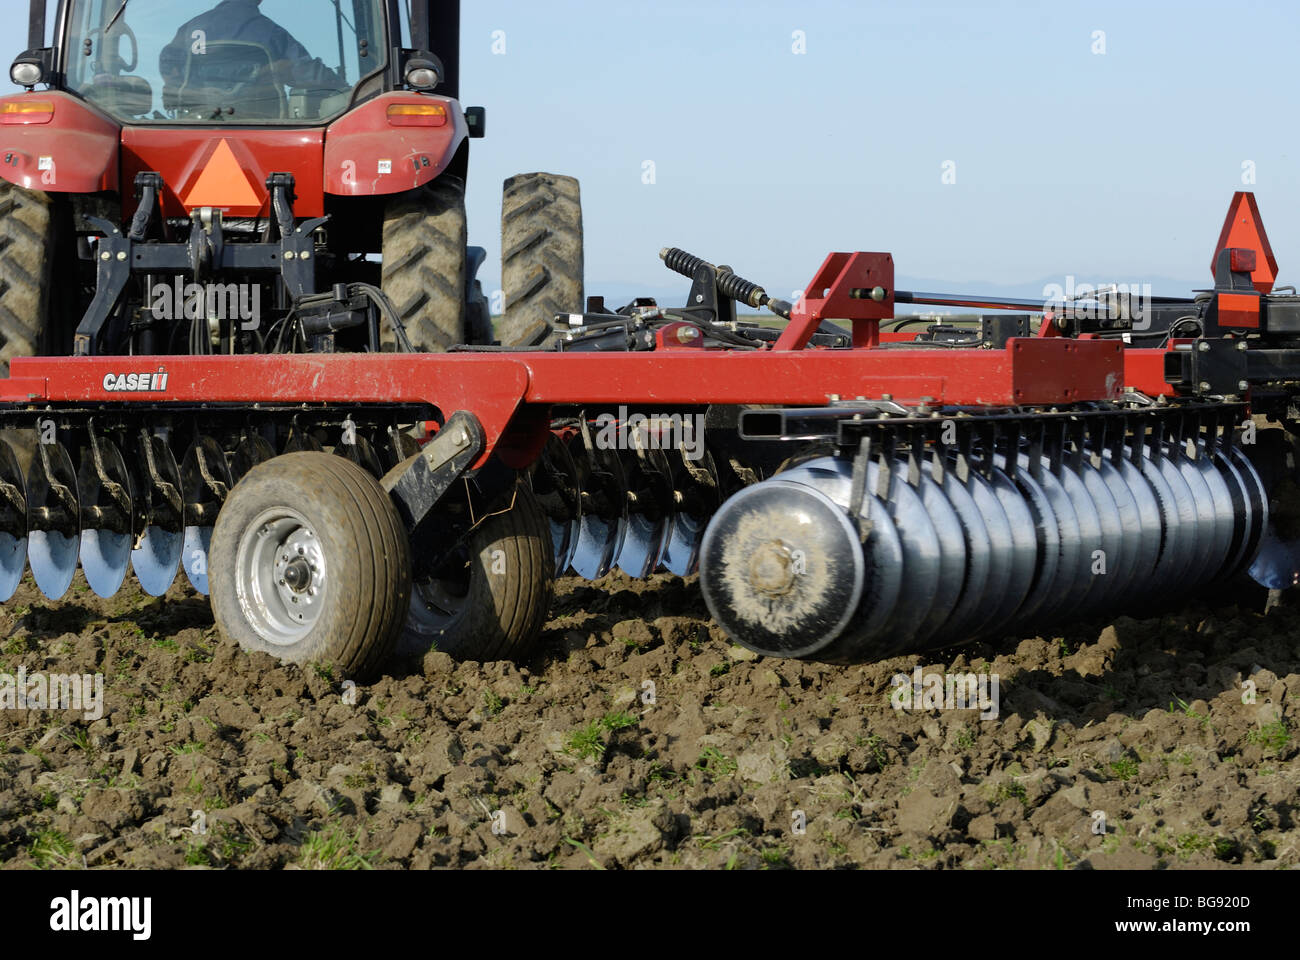 Close-up of Disk Rippers being pulled by a Case Tractor - Stock Image